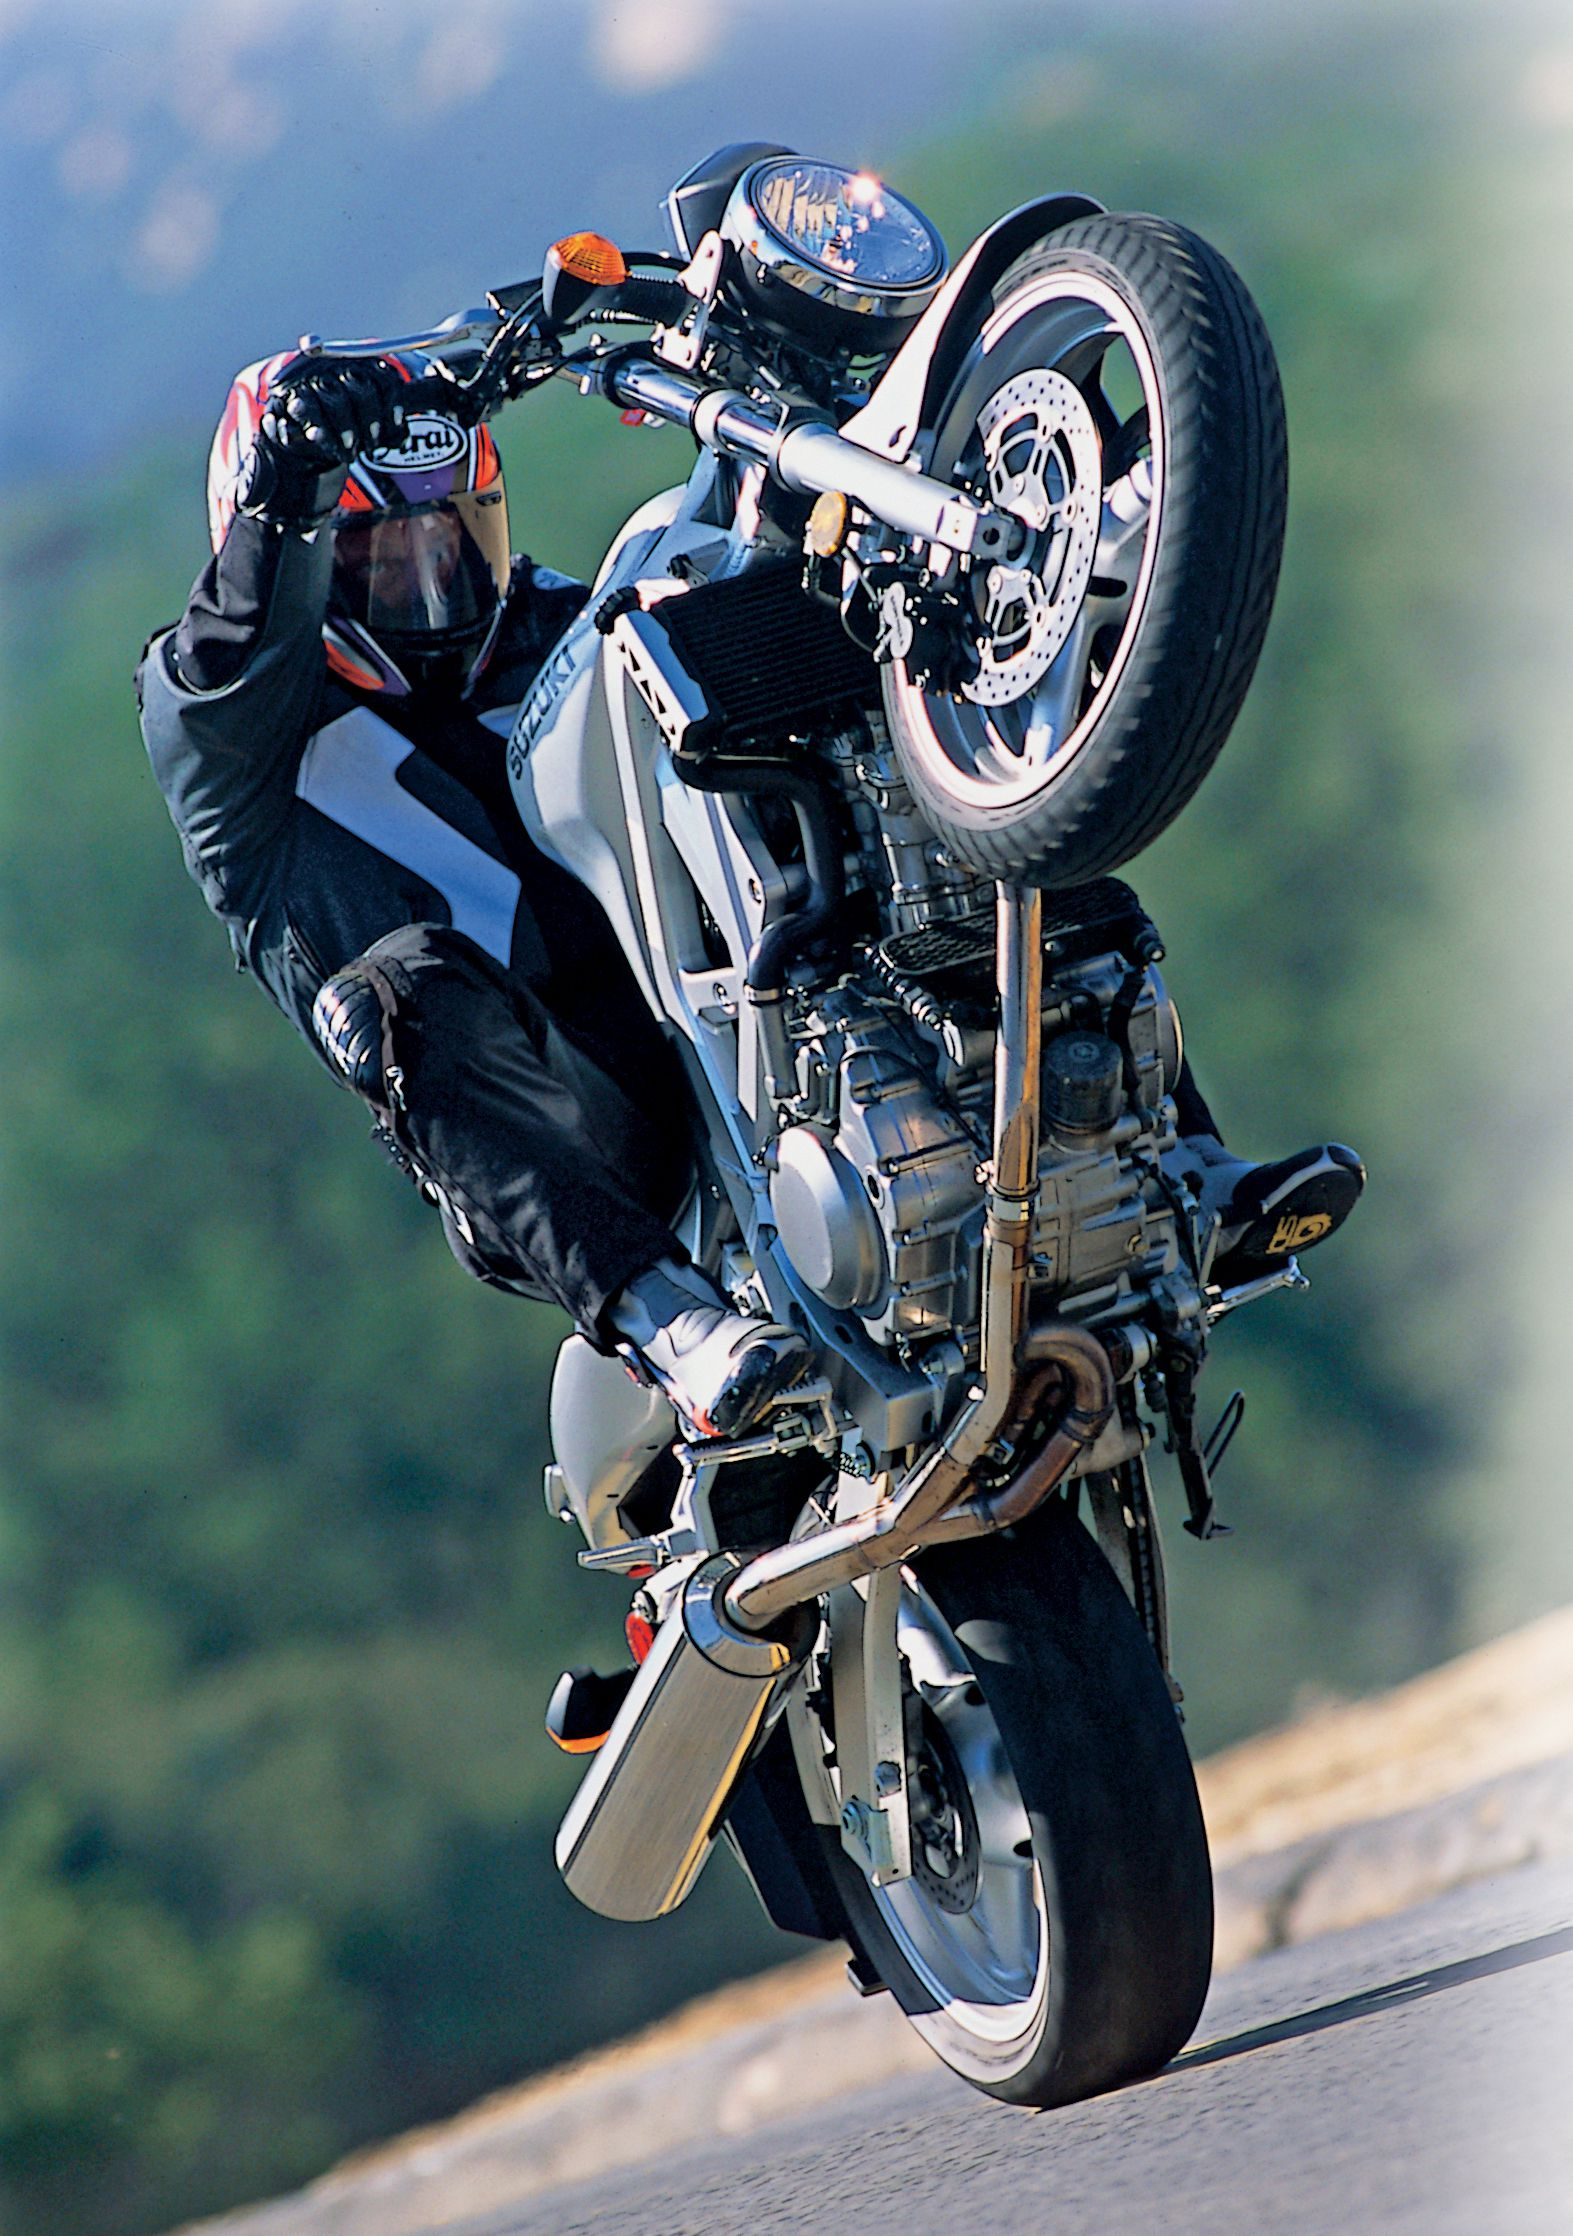 Ten Best Used Motorcycles- Used Motorcycle Reviews | Cycle World